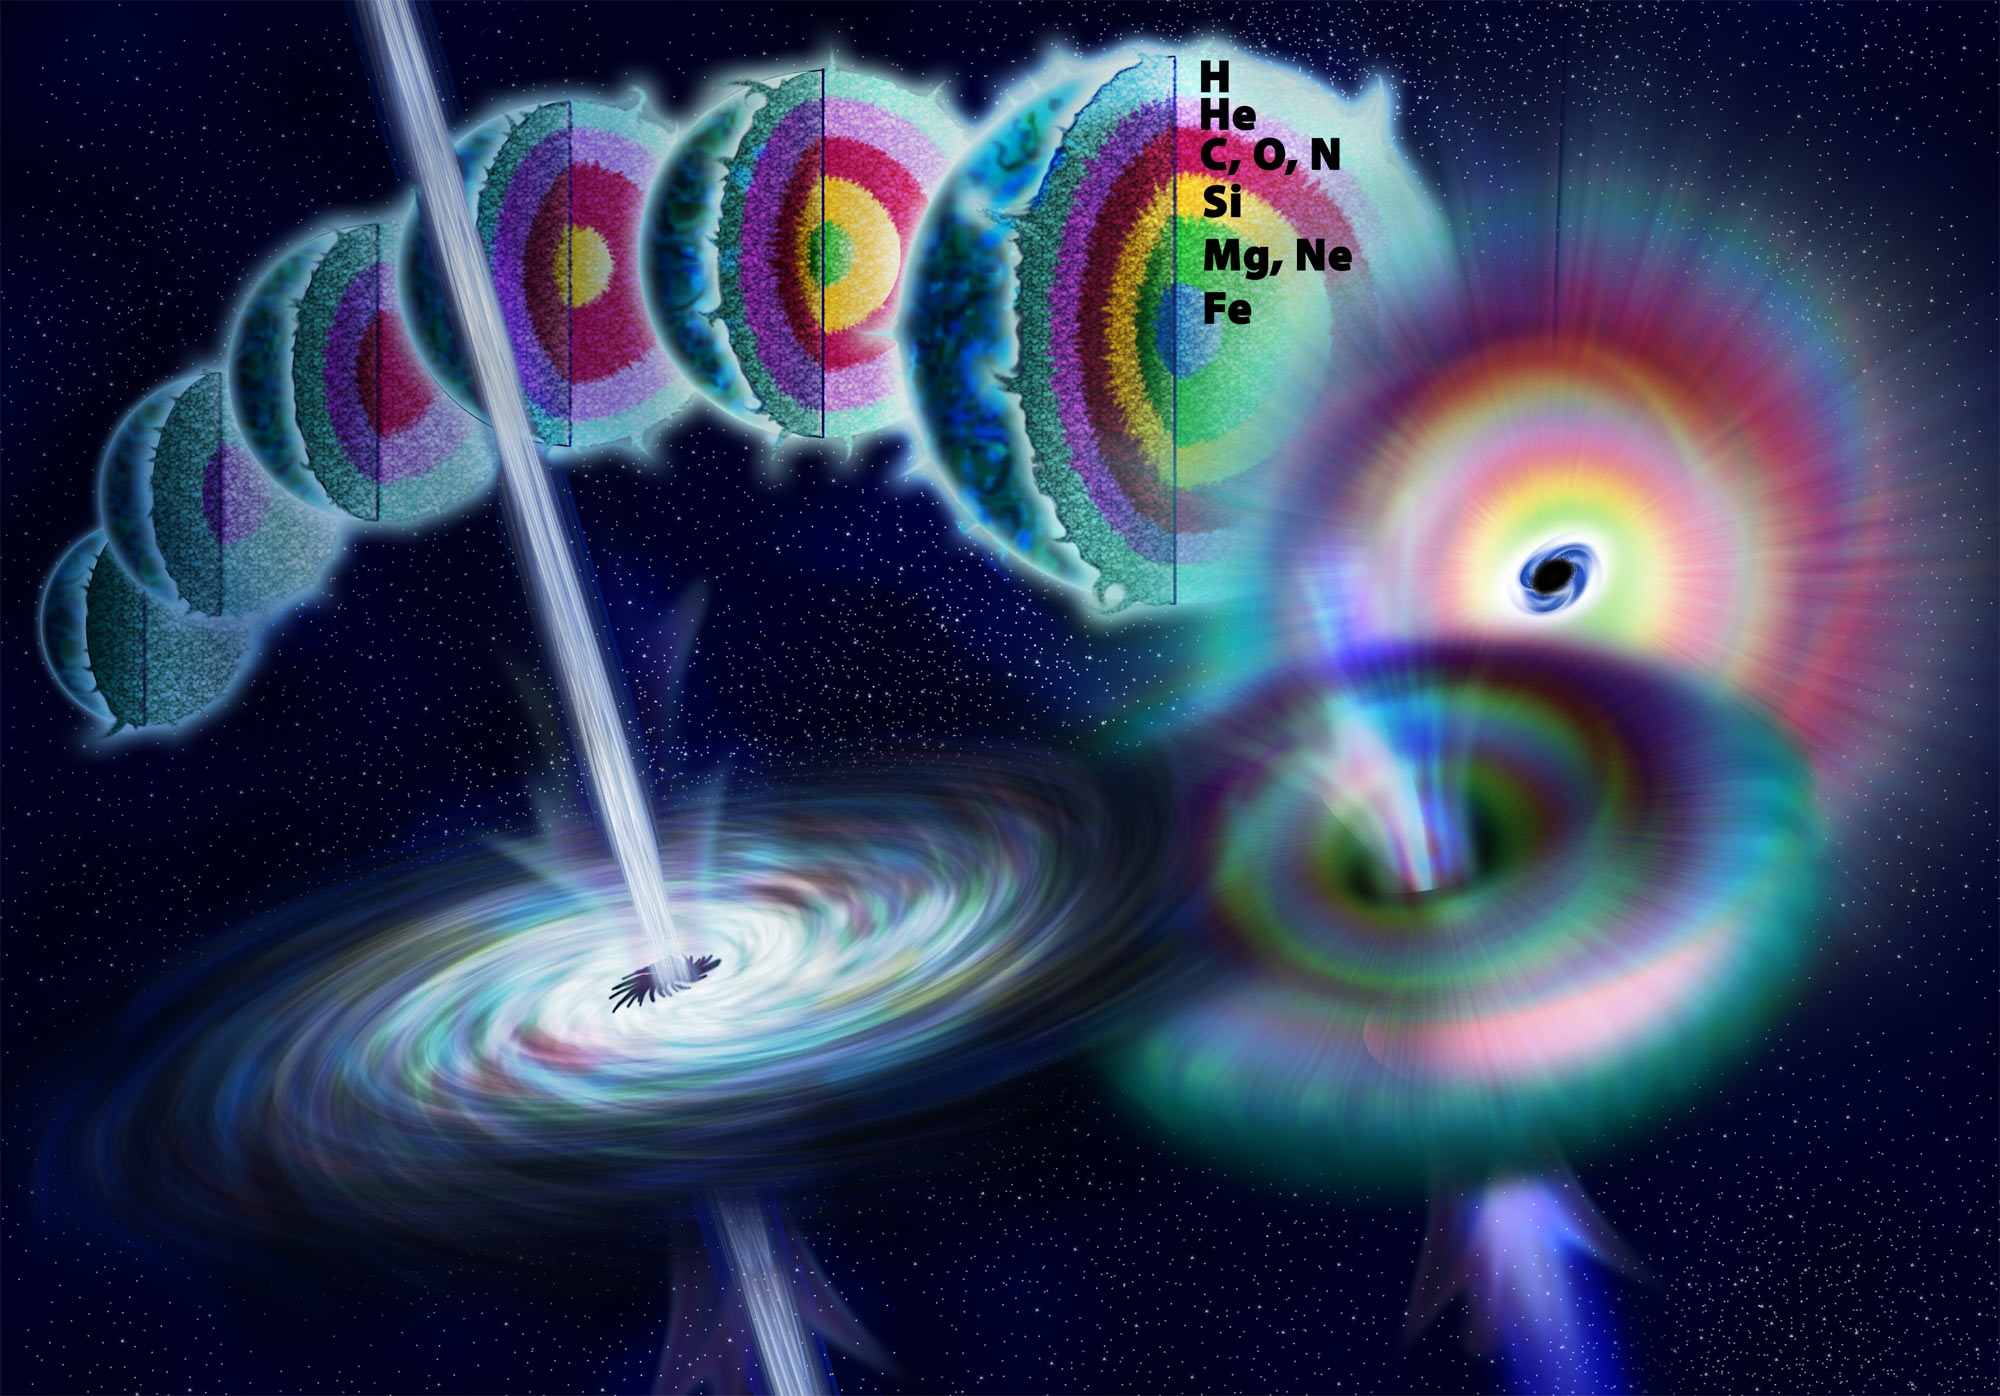 Description gamma ray burst